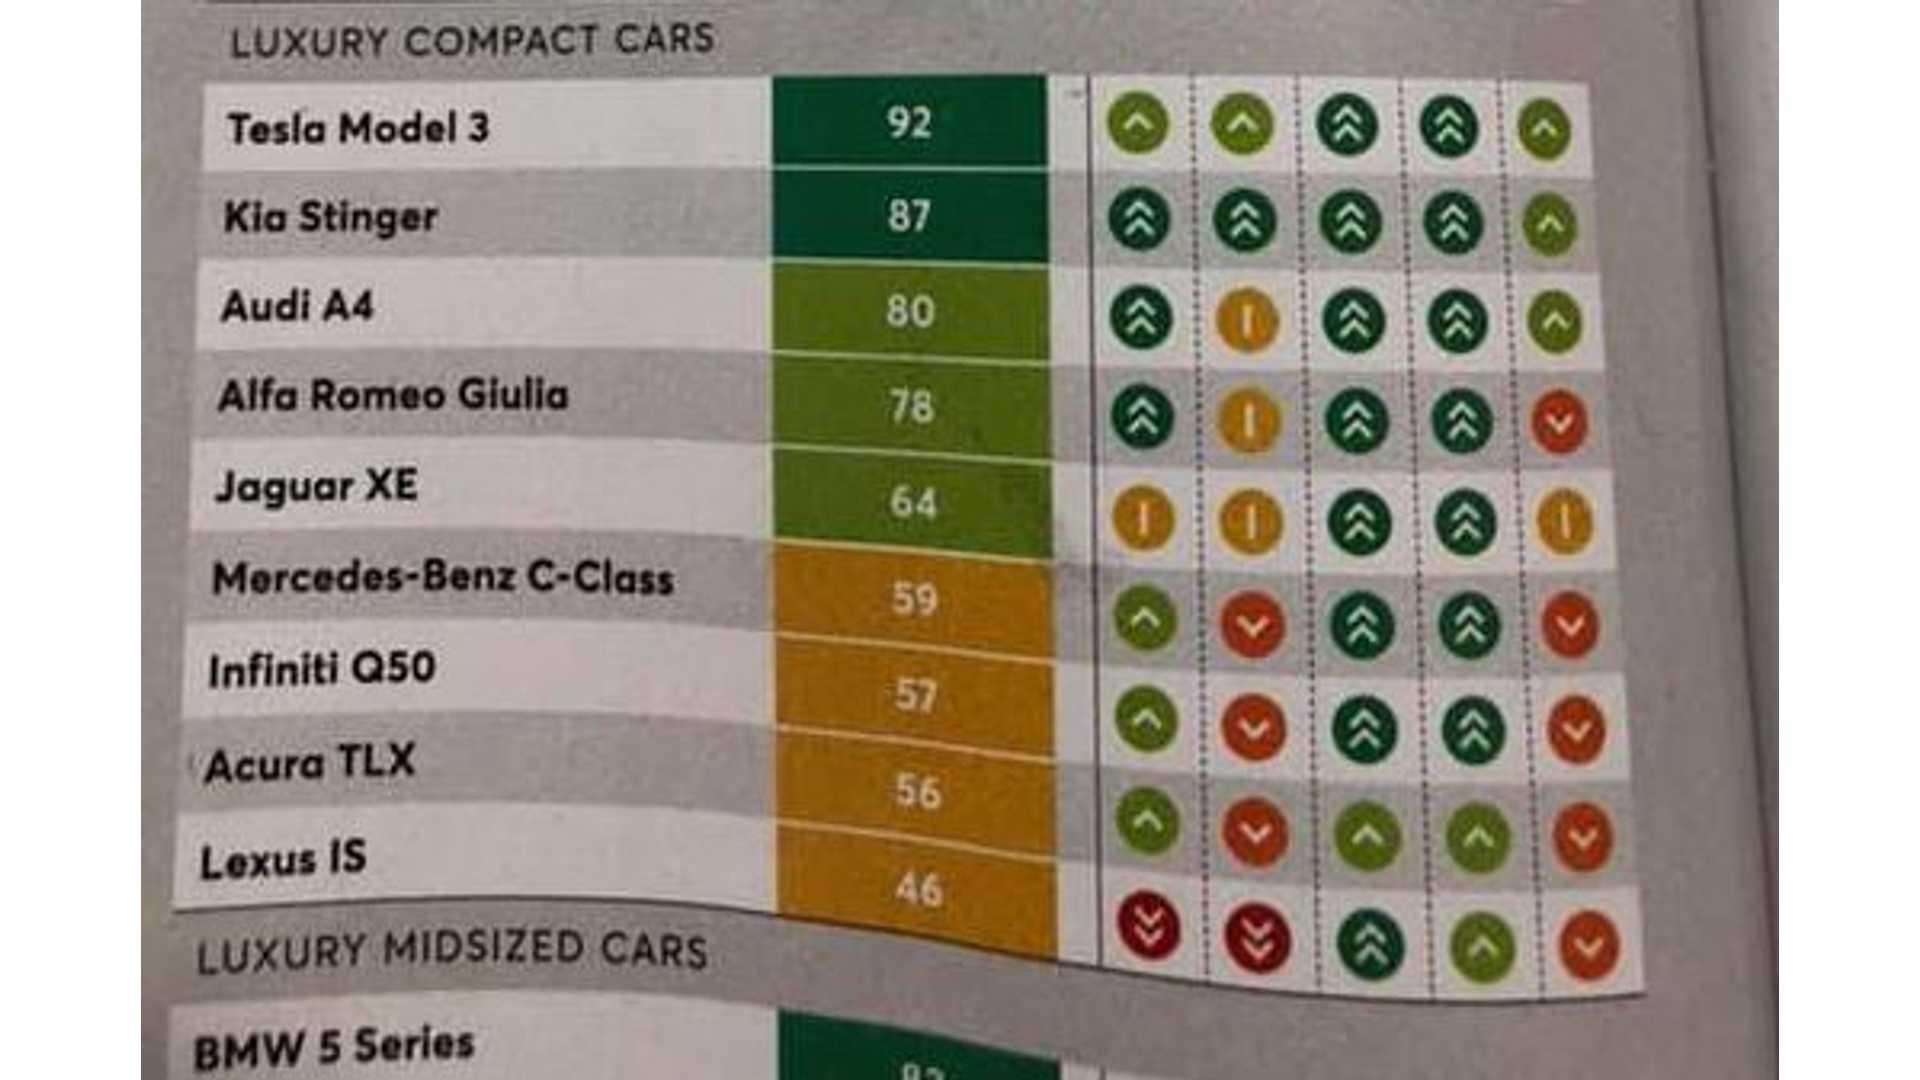 Tesla Model 3 Is Top Rated Luxury Compact Car By Consumer Reports Readers